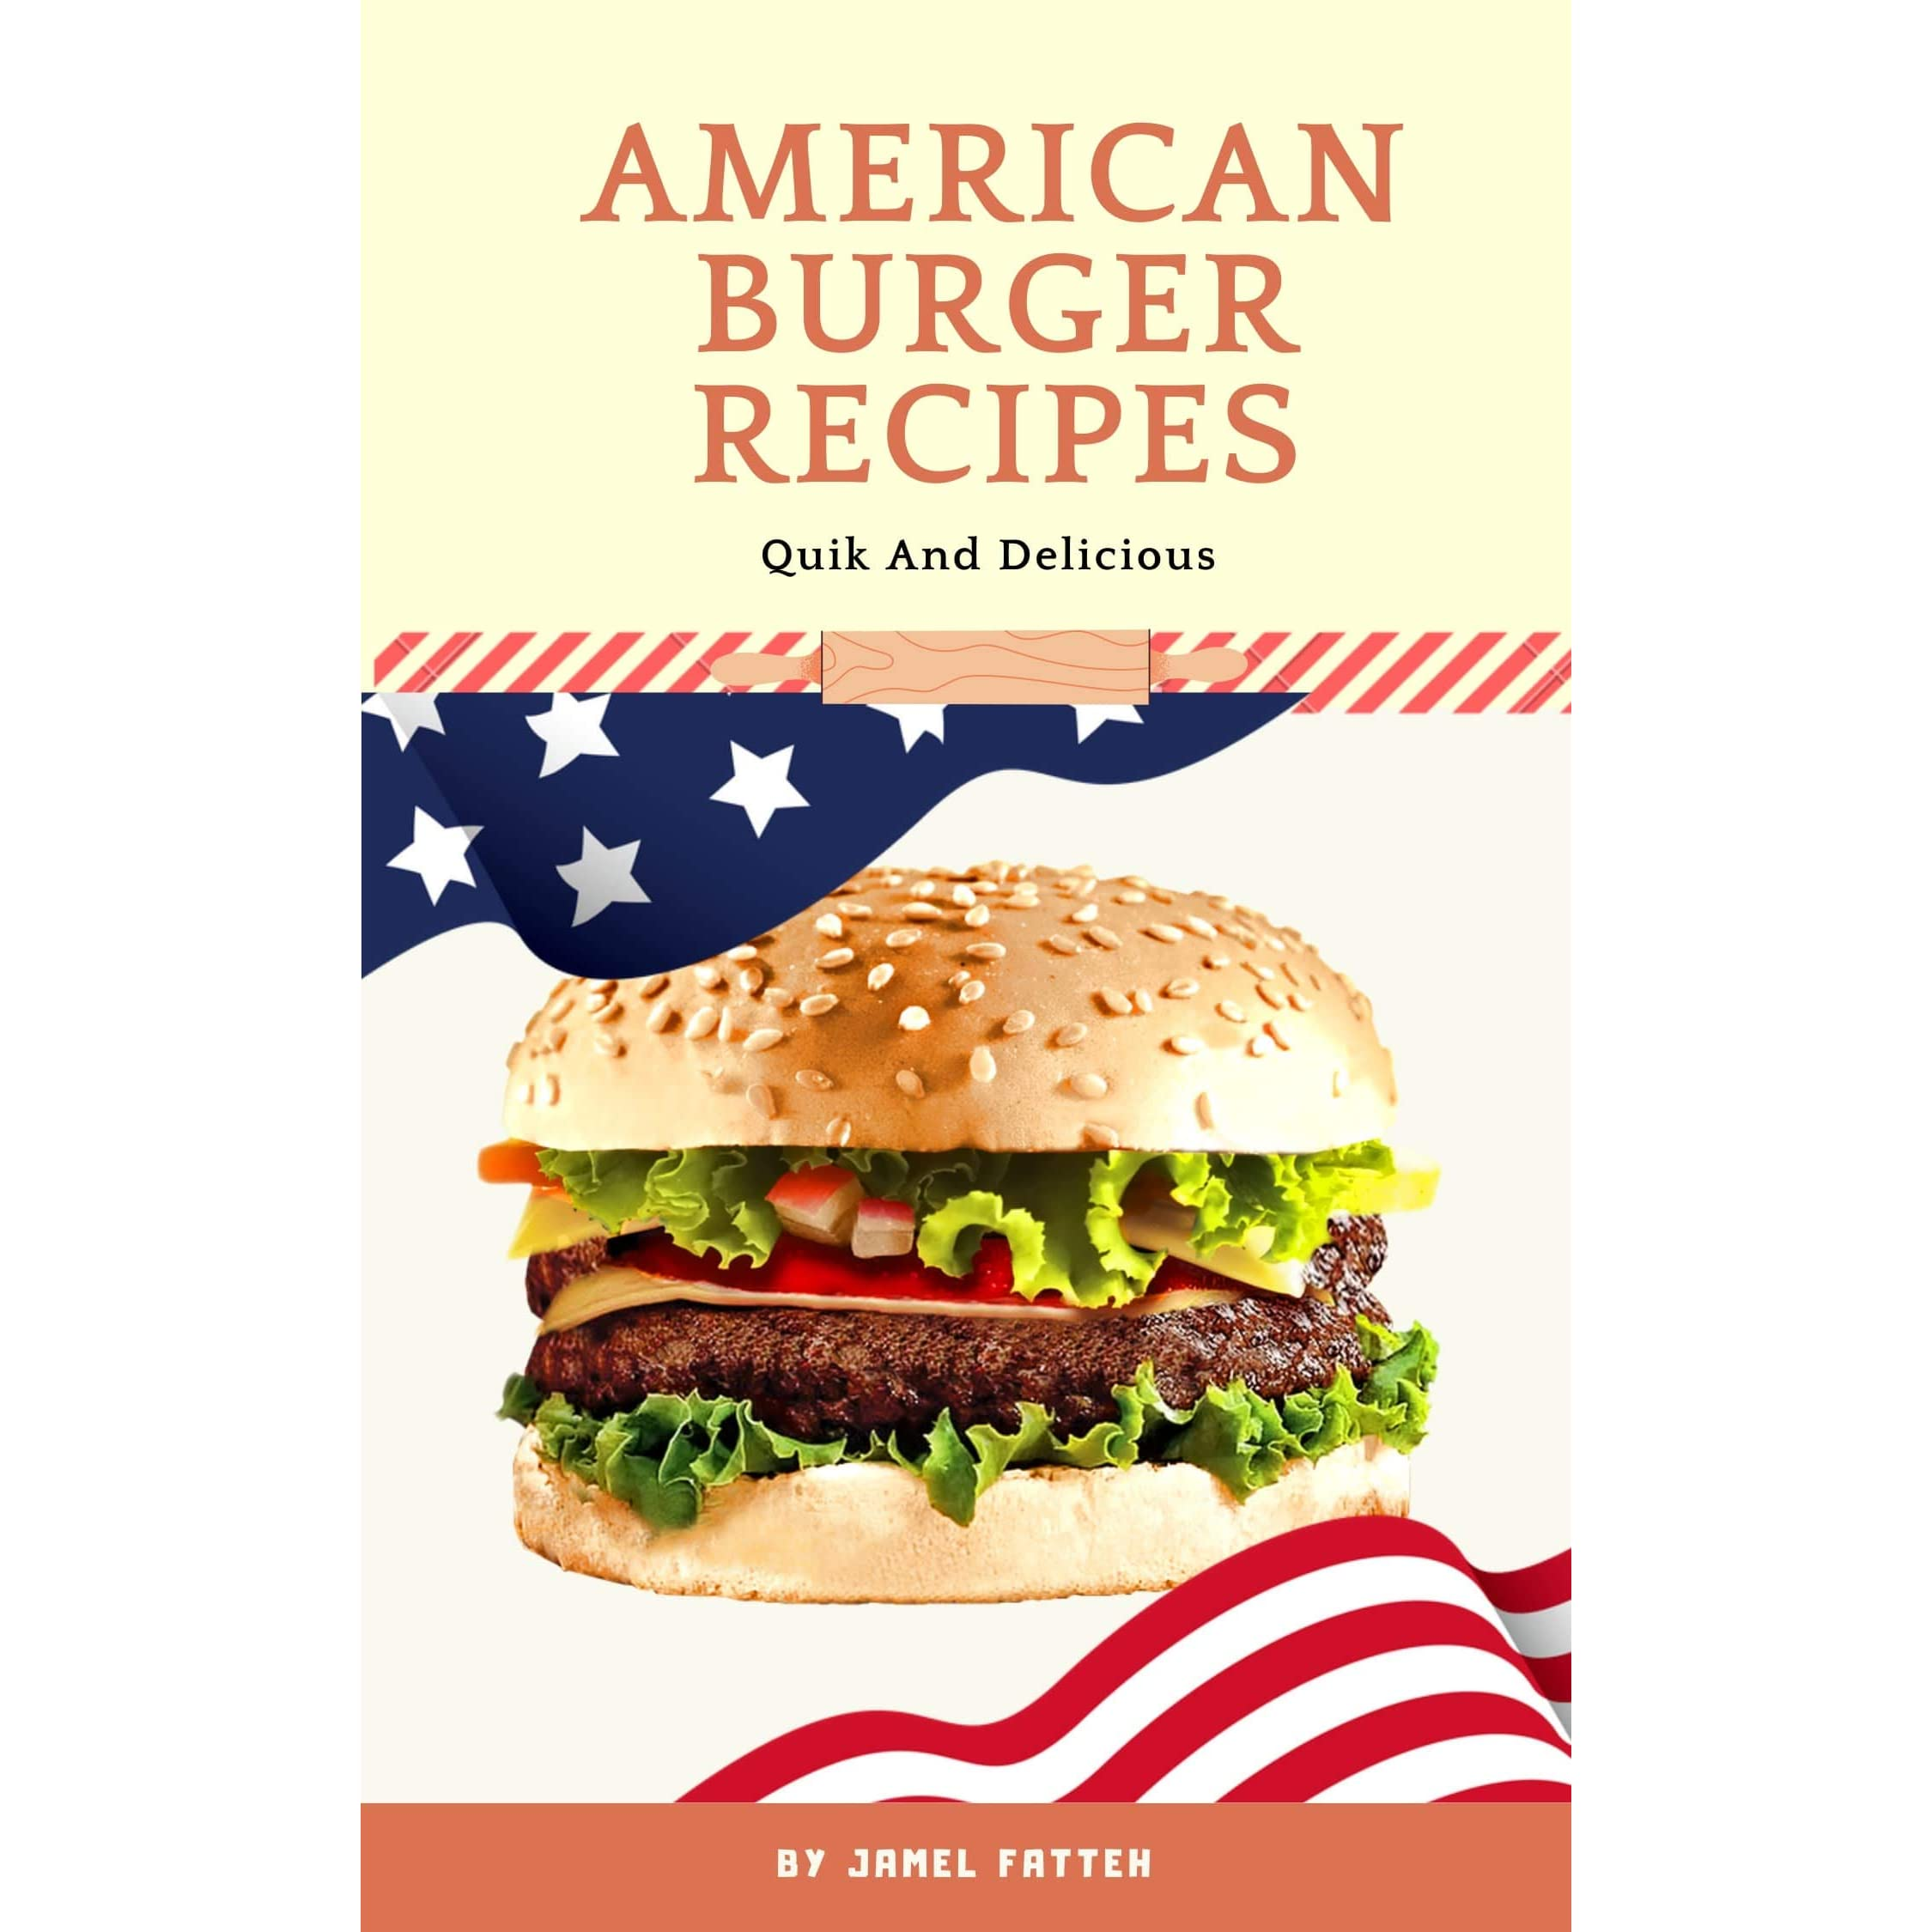 American Burger Recipes Quick And Delicious By Jamel Fatteh